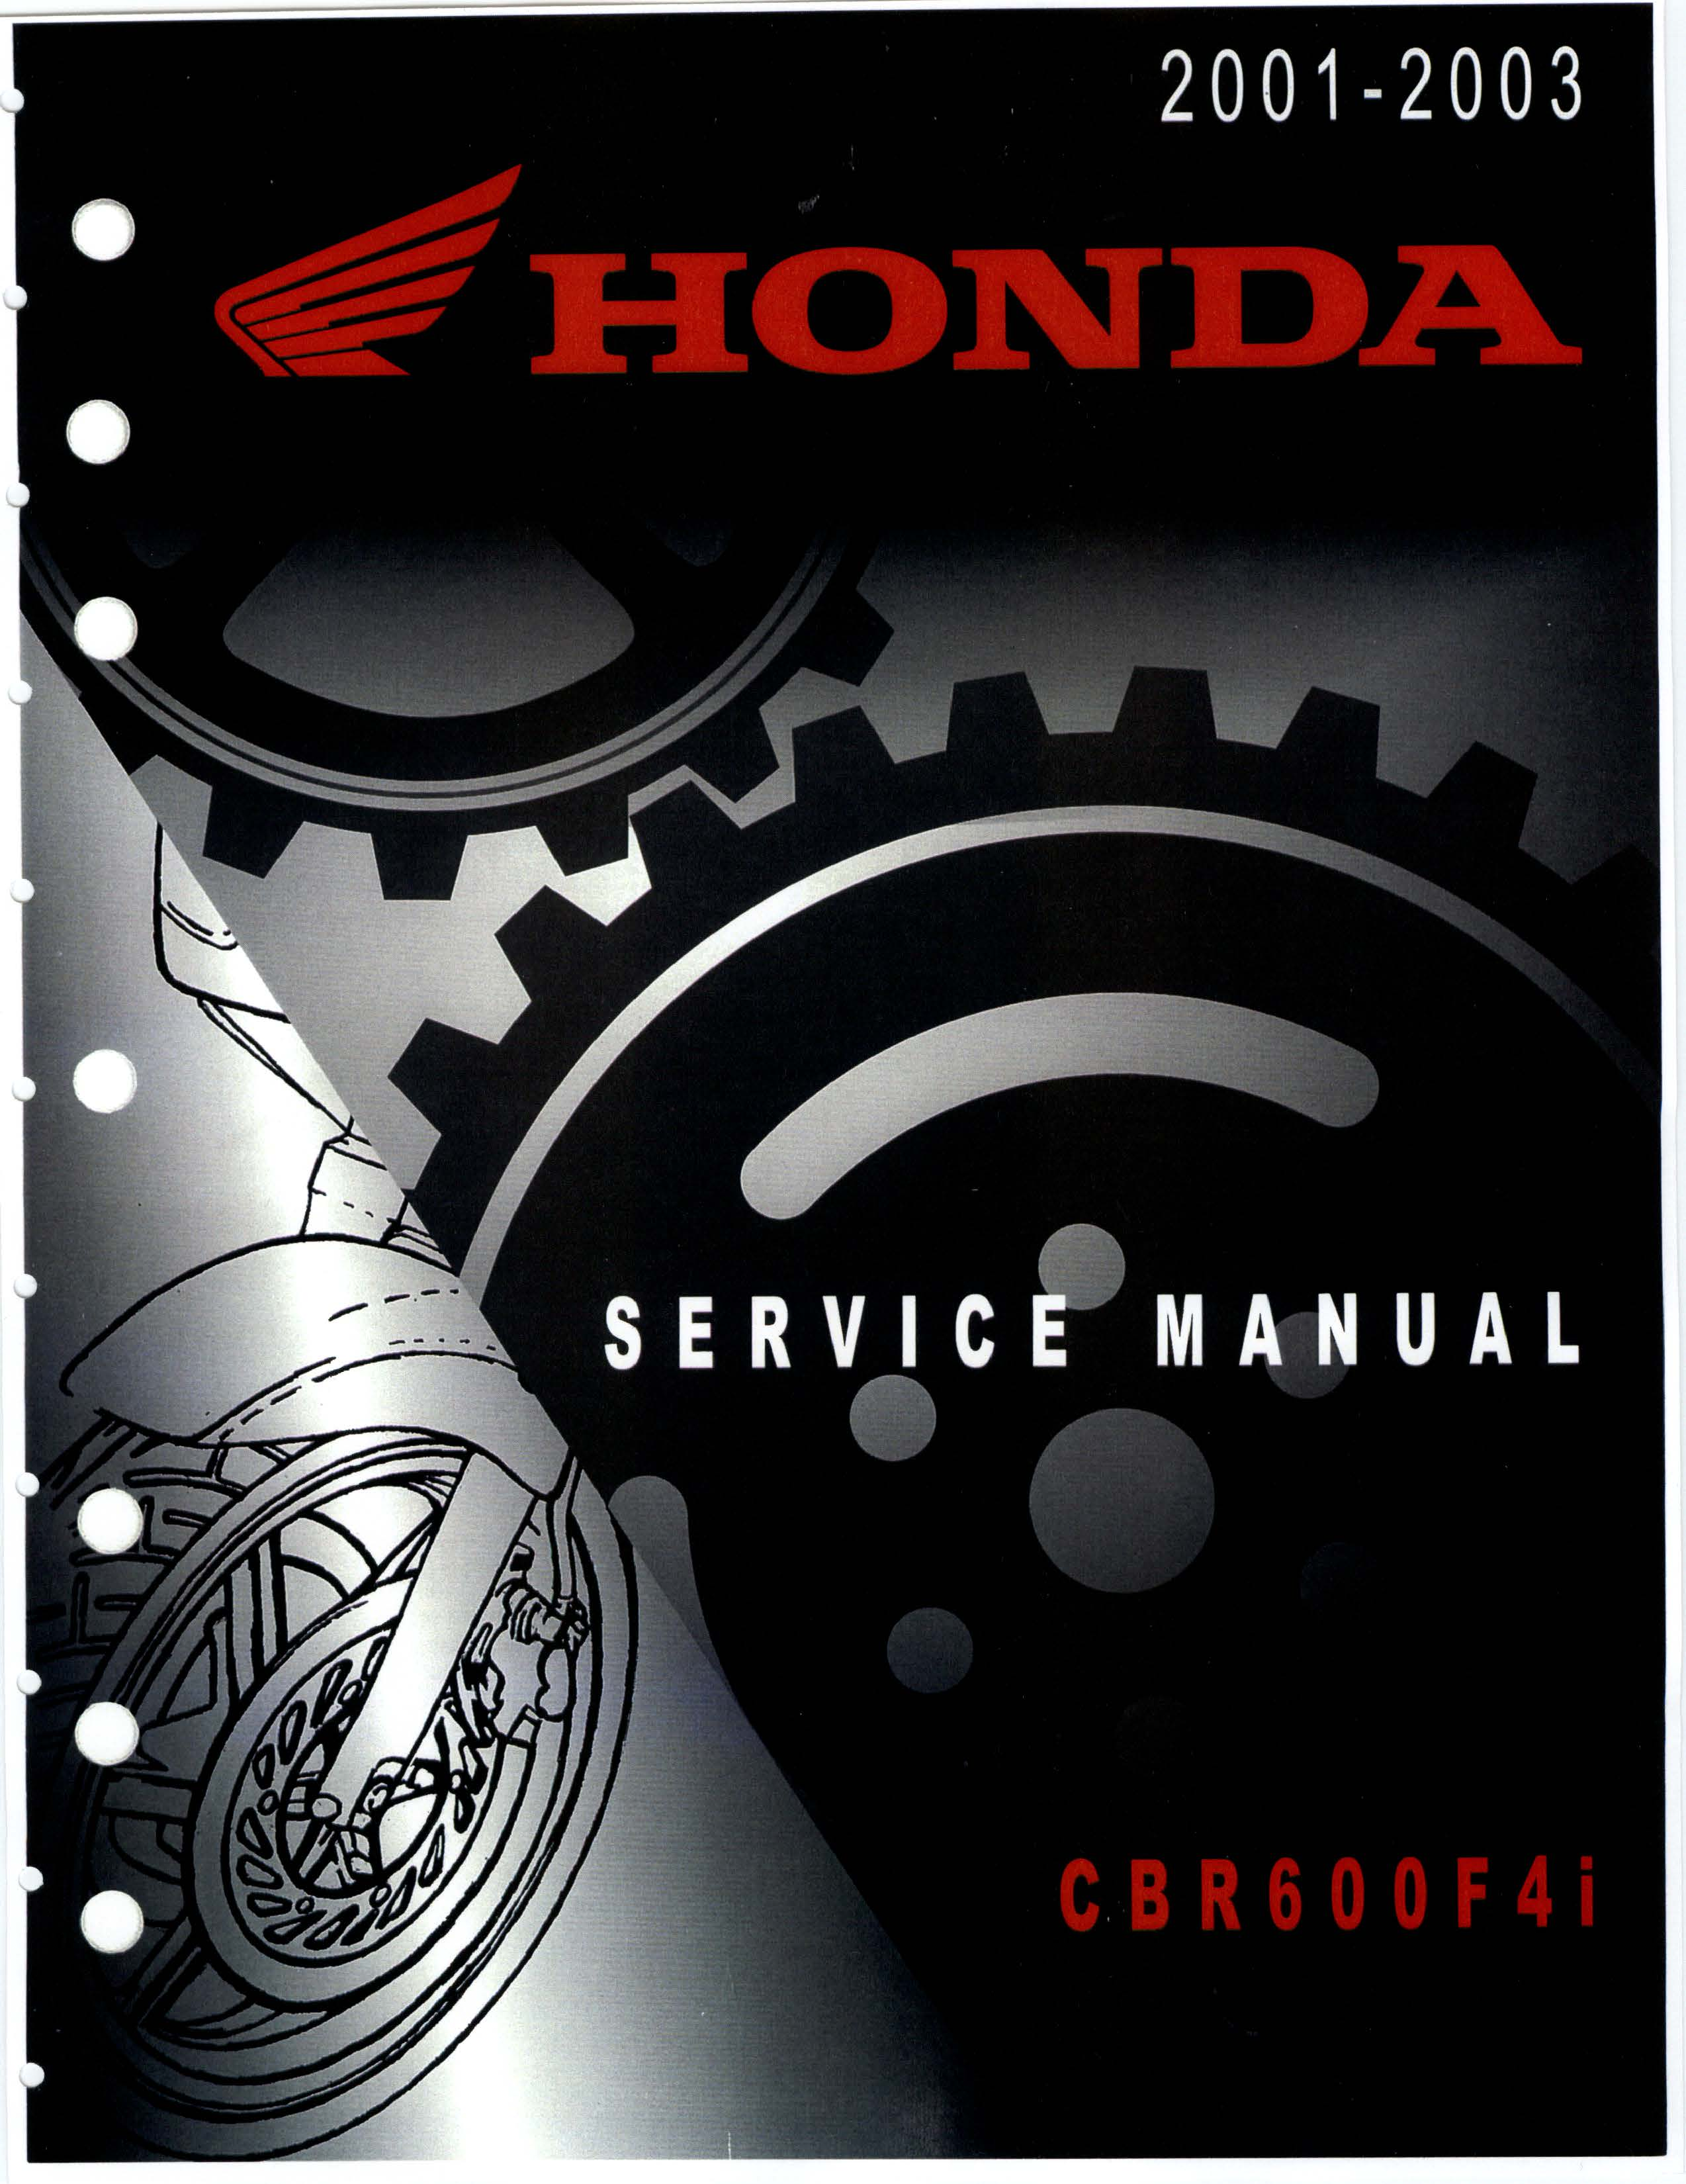 Workshop Manual for Honda CBR600F4i (2001-2003)